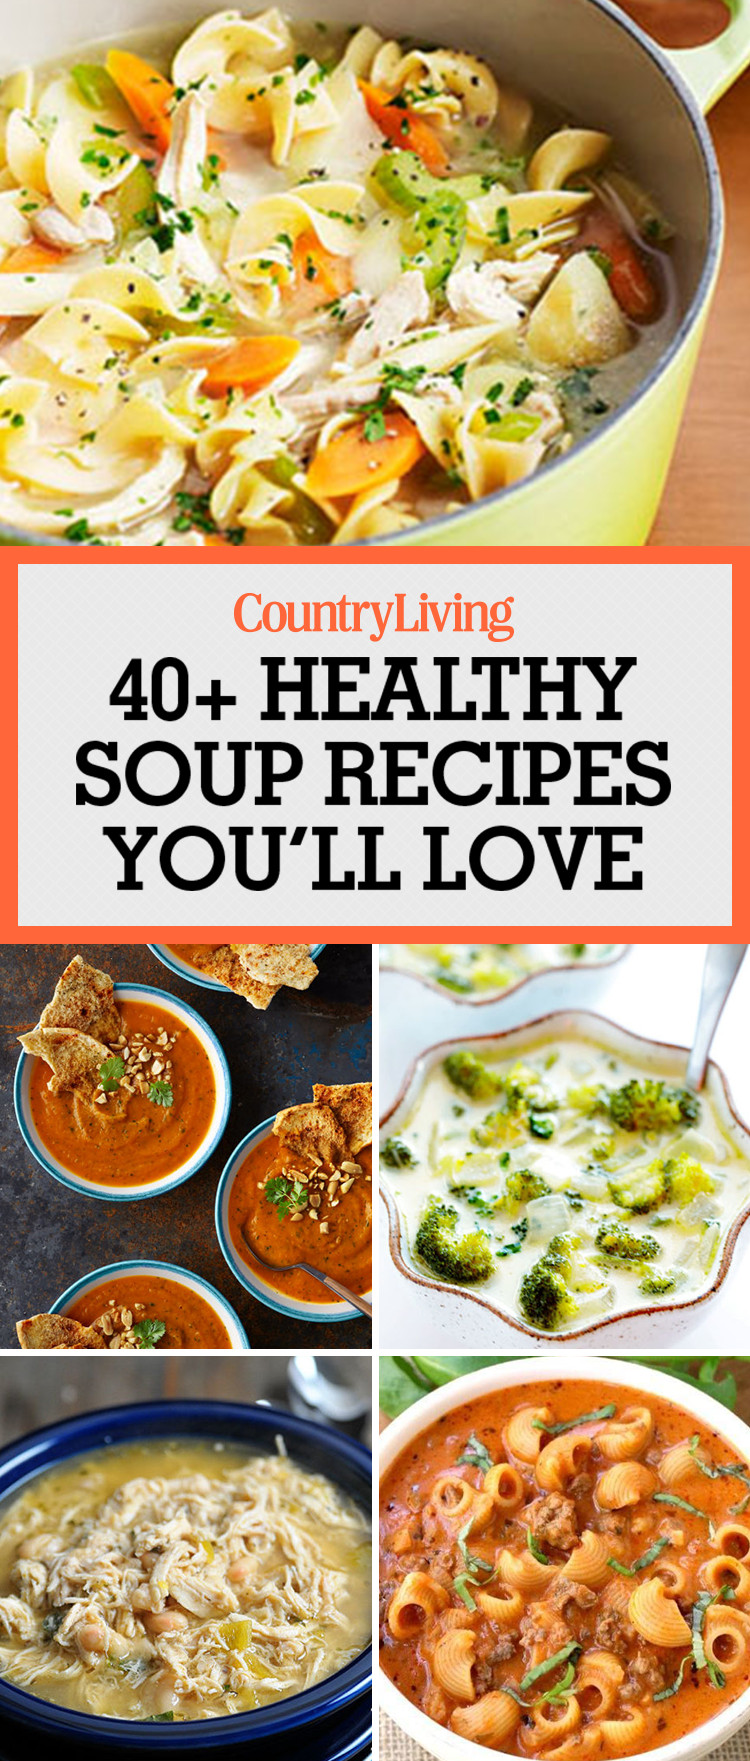 Healthy Soups To Make  49 Best Healthy Soup Recipes Quick & Easy Low Calorie Soups